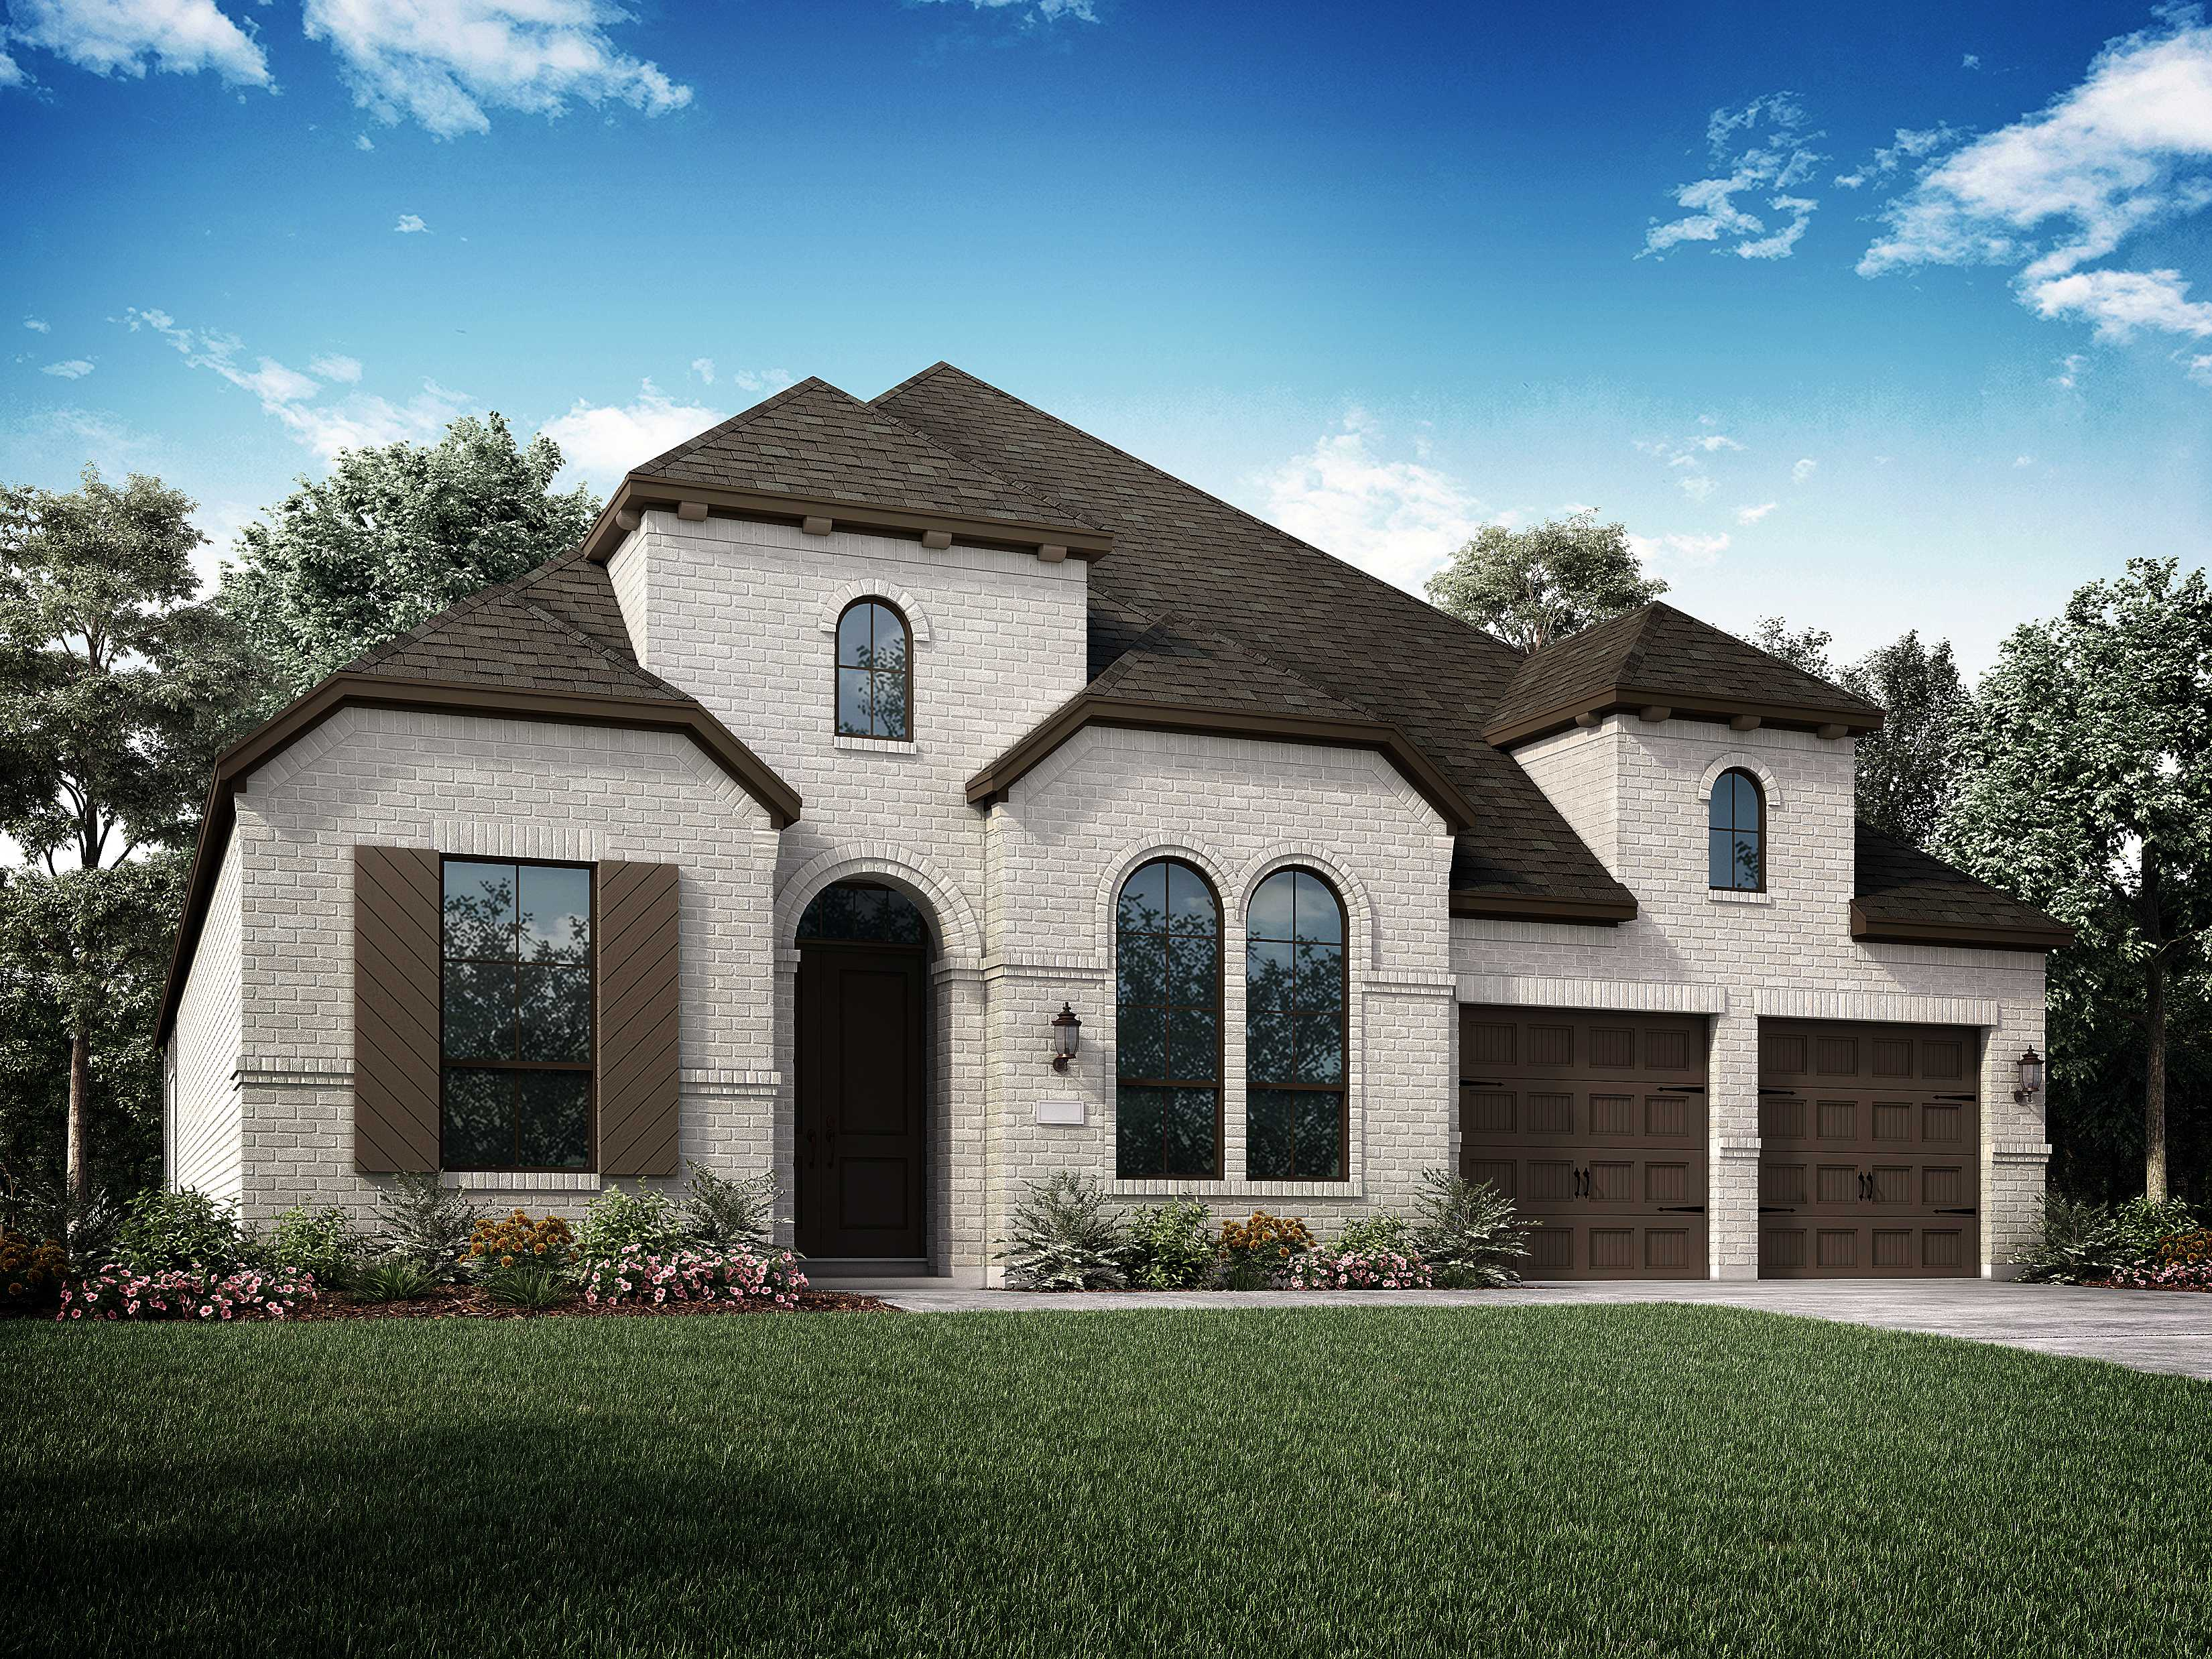 new home plan 217 in austin tx 78737 new home plan 217 in austin tx 78737